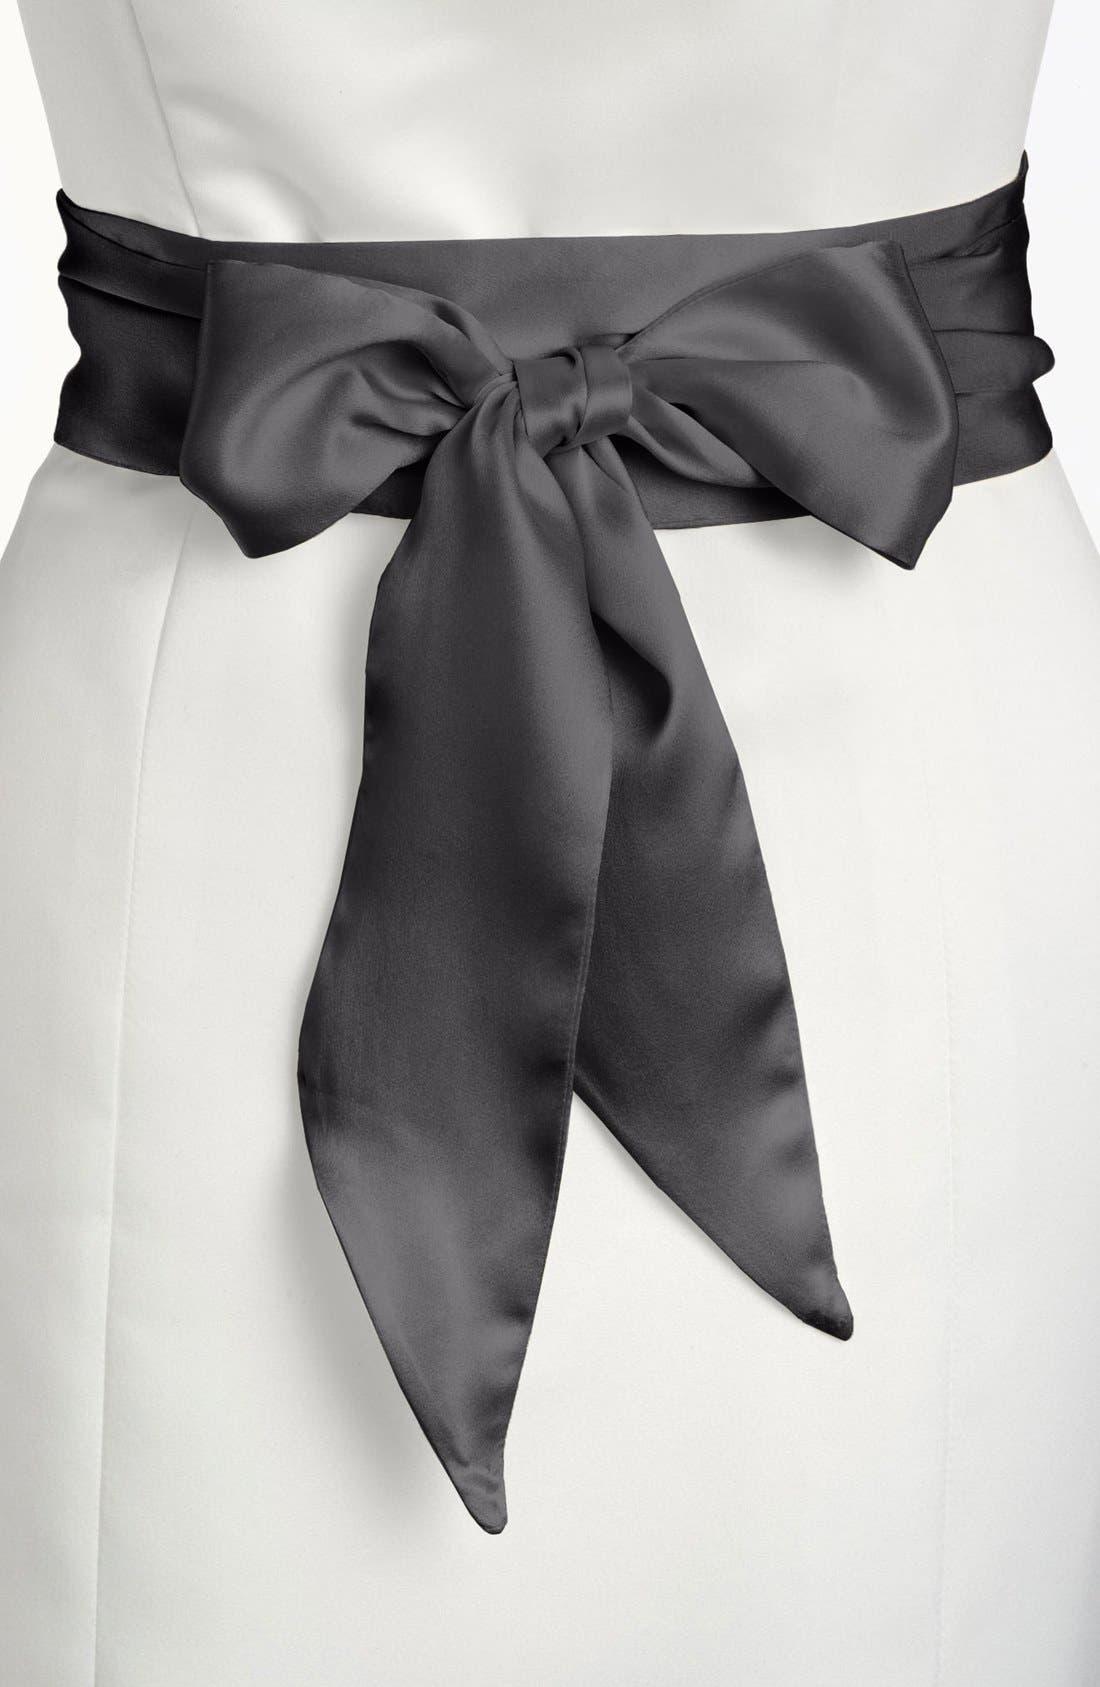 Bridal belts satin sashes beaded belts more nordstrom ombrellifo Gallery